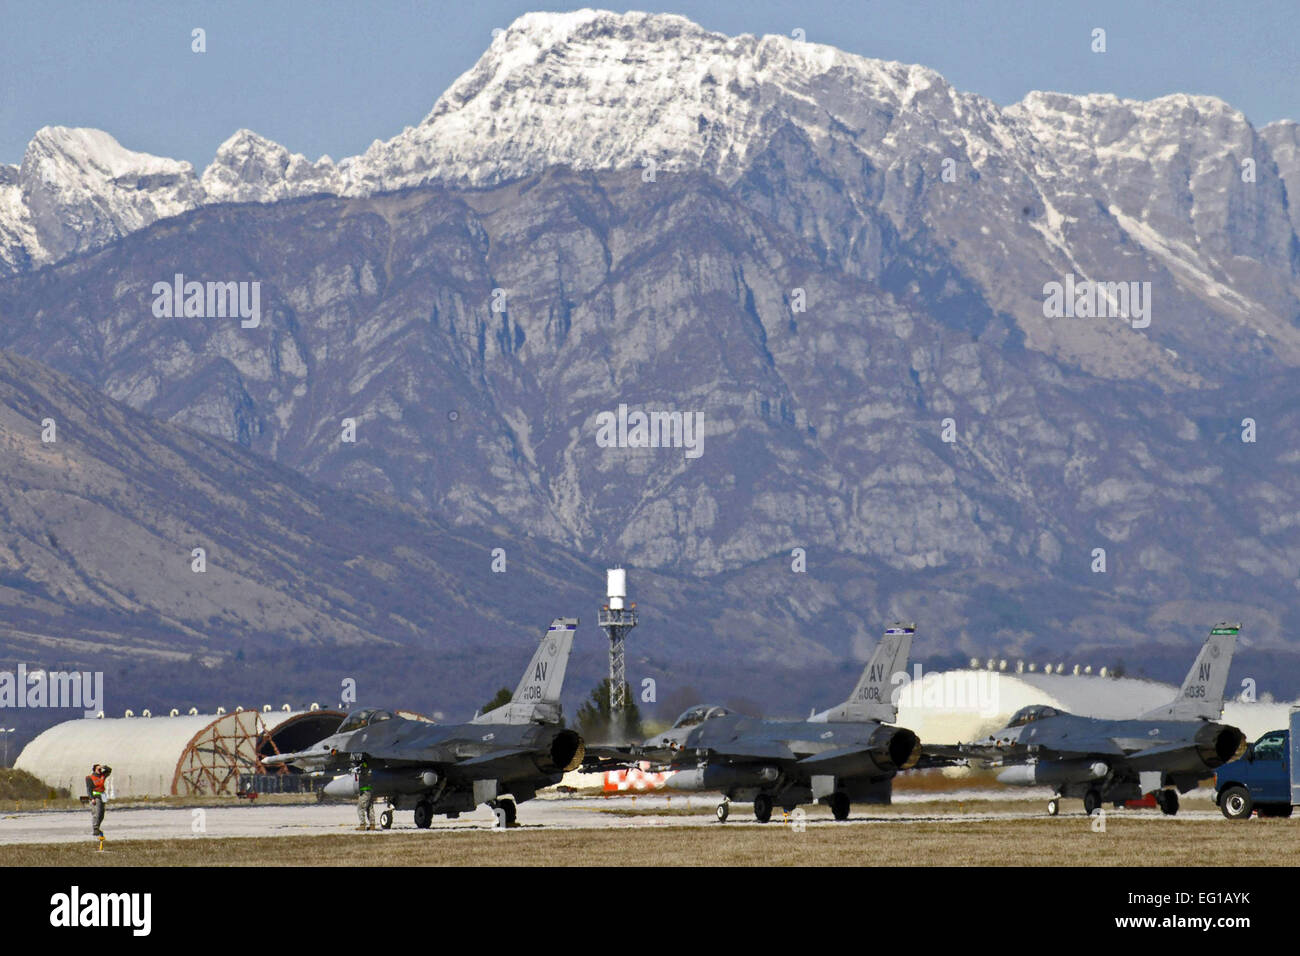 U.S. Air Force F-16 Fighting Falcon fighter aircraft return to Aviano Air Base, Italy, March 20, 2011, after supporting - Stock Image